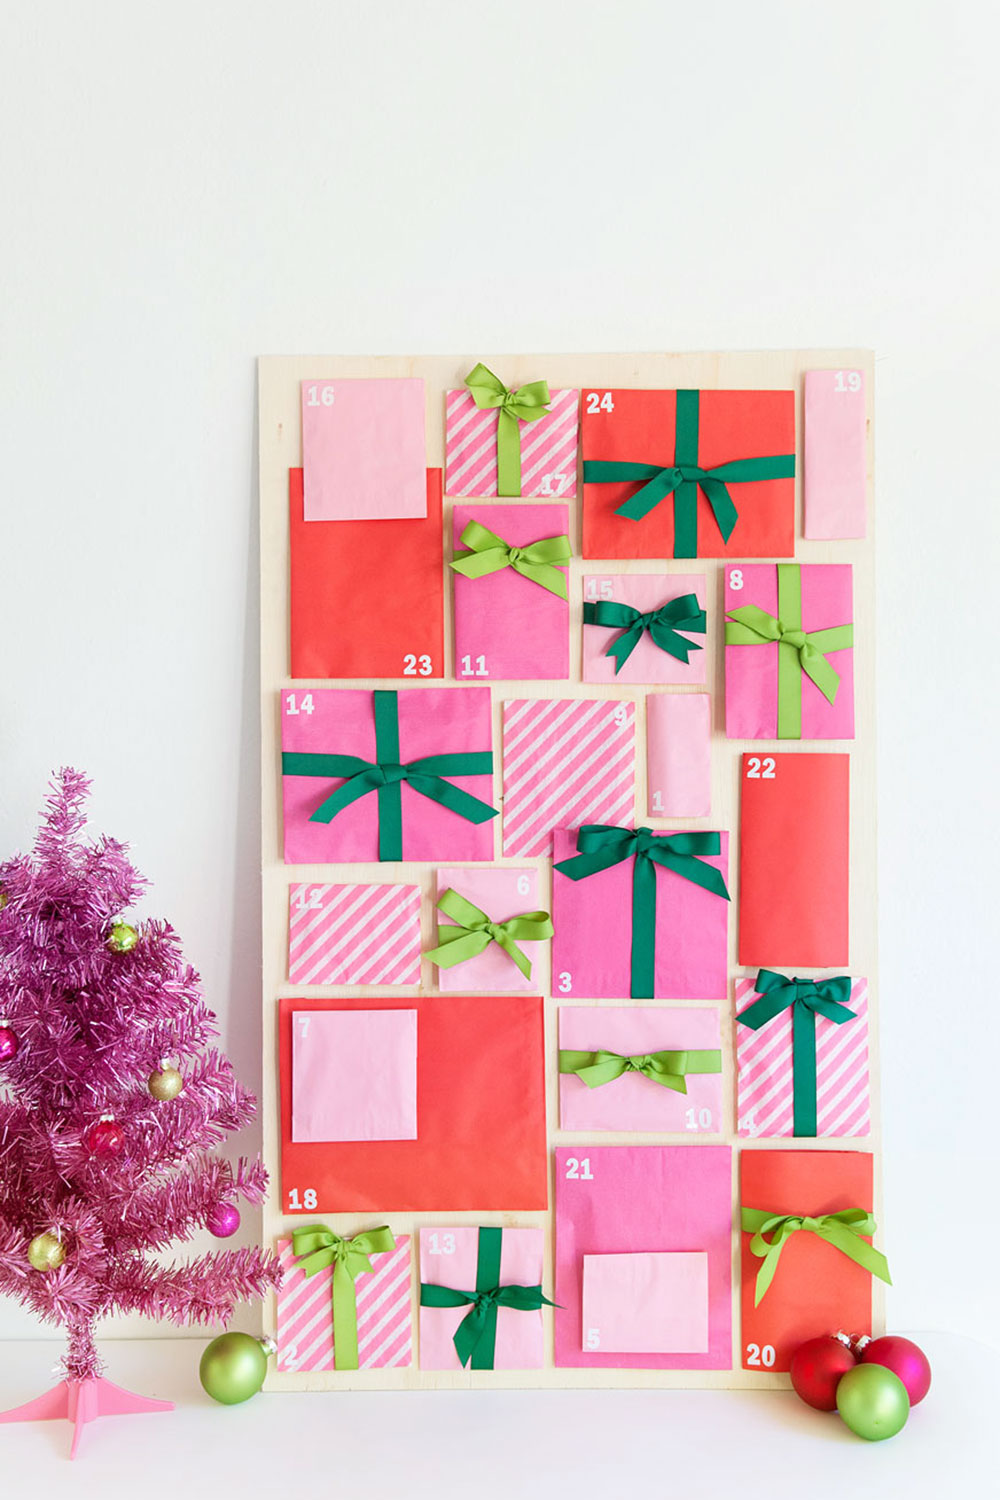 como hacer un calendario de adviento DIY con bolsas de papel recicladas, calendario navideño DIy colorido para decorar la pared